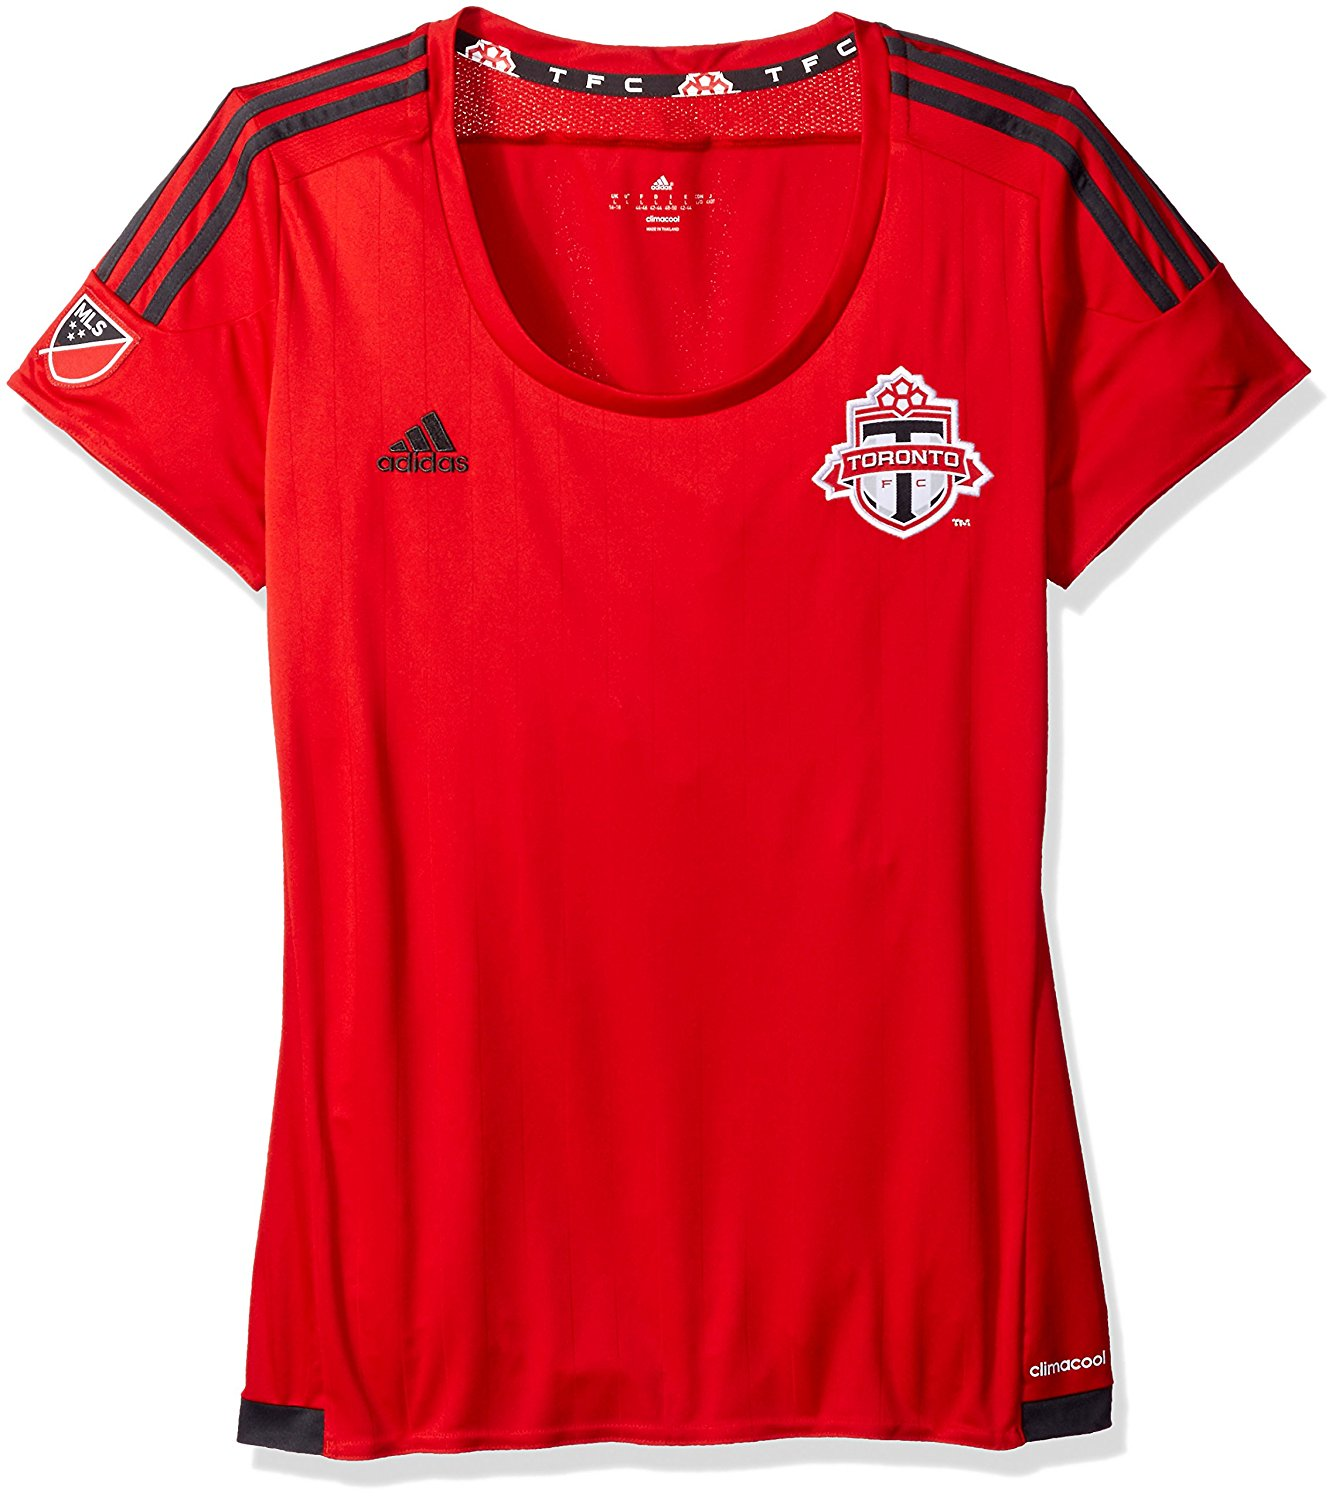 MLS Toronto FC Women's Replica Short Sleeve Jersey, Large, Red